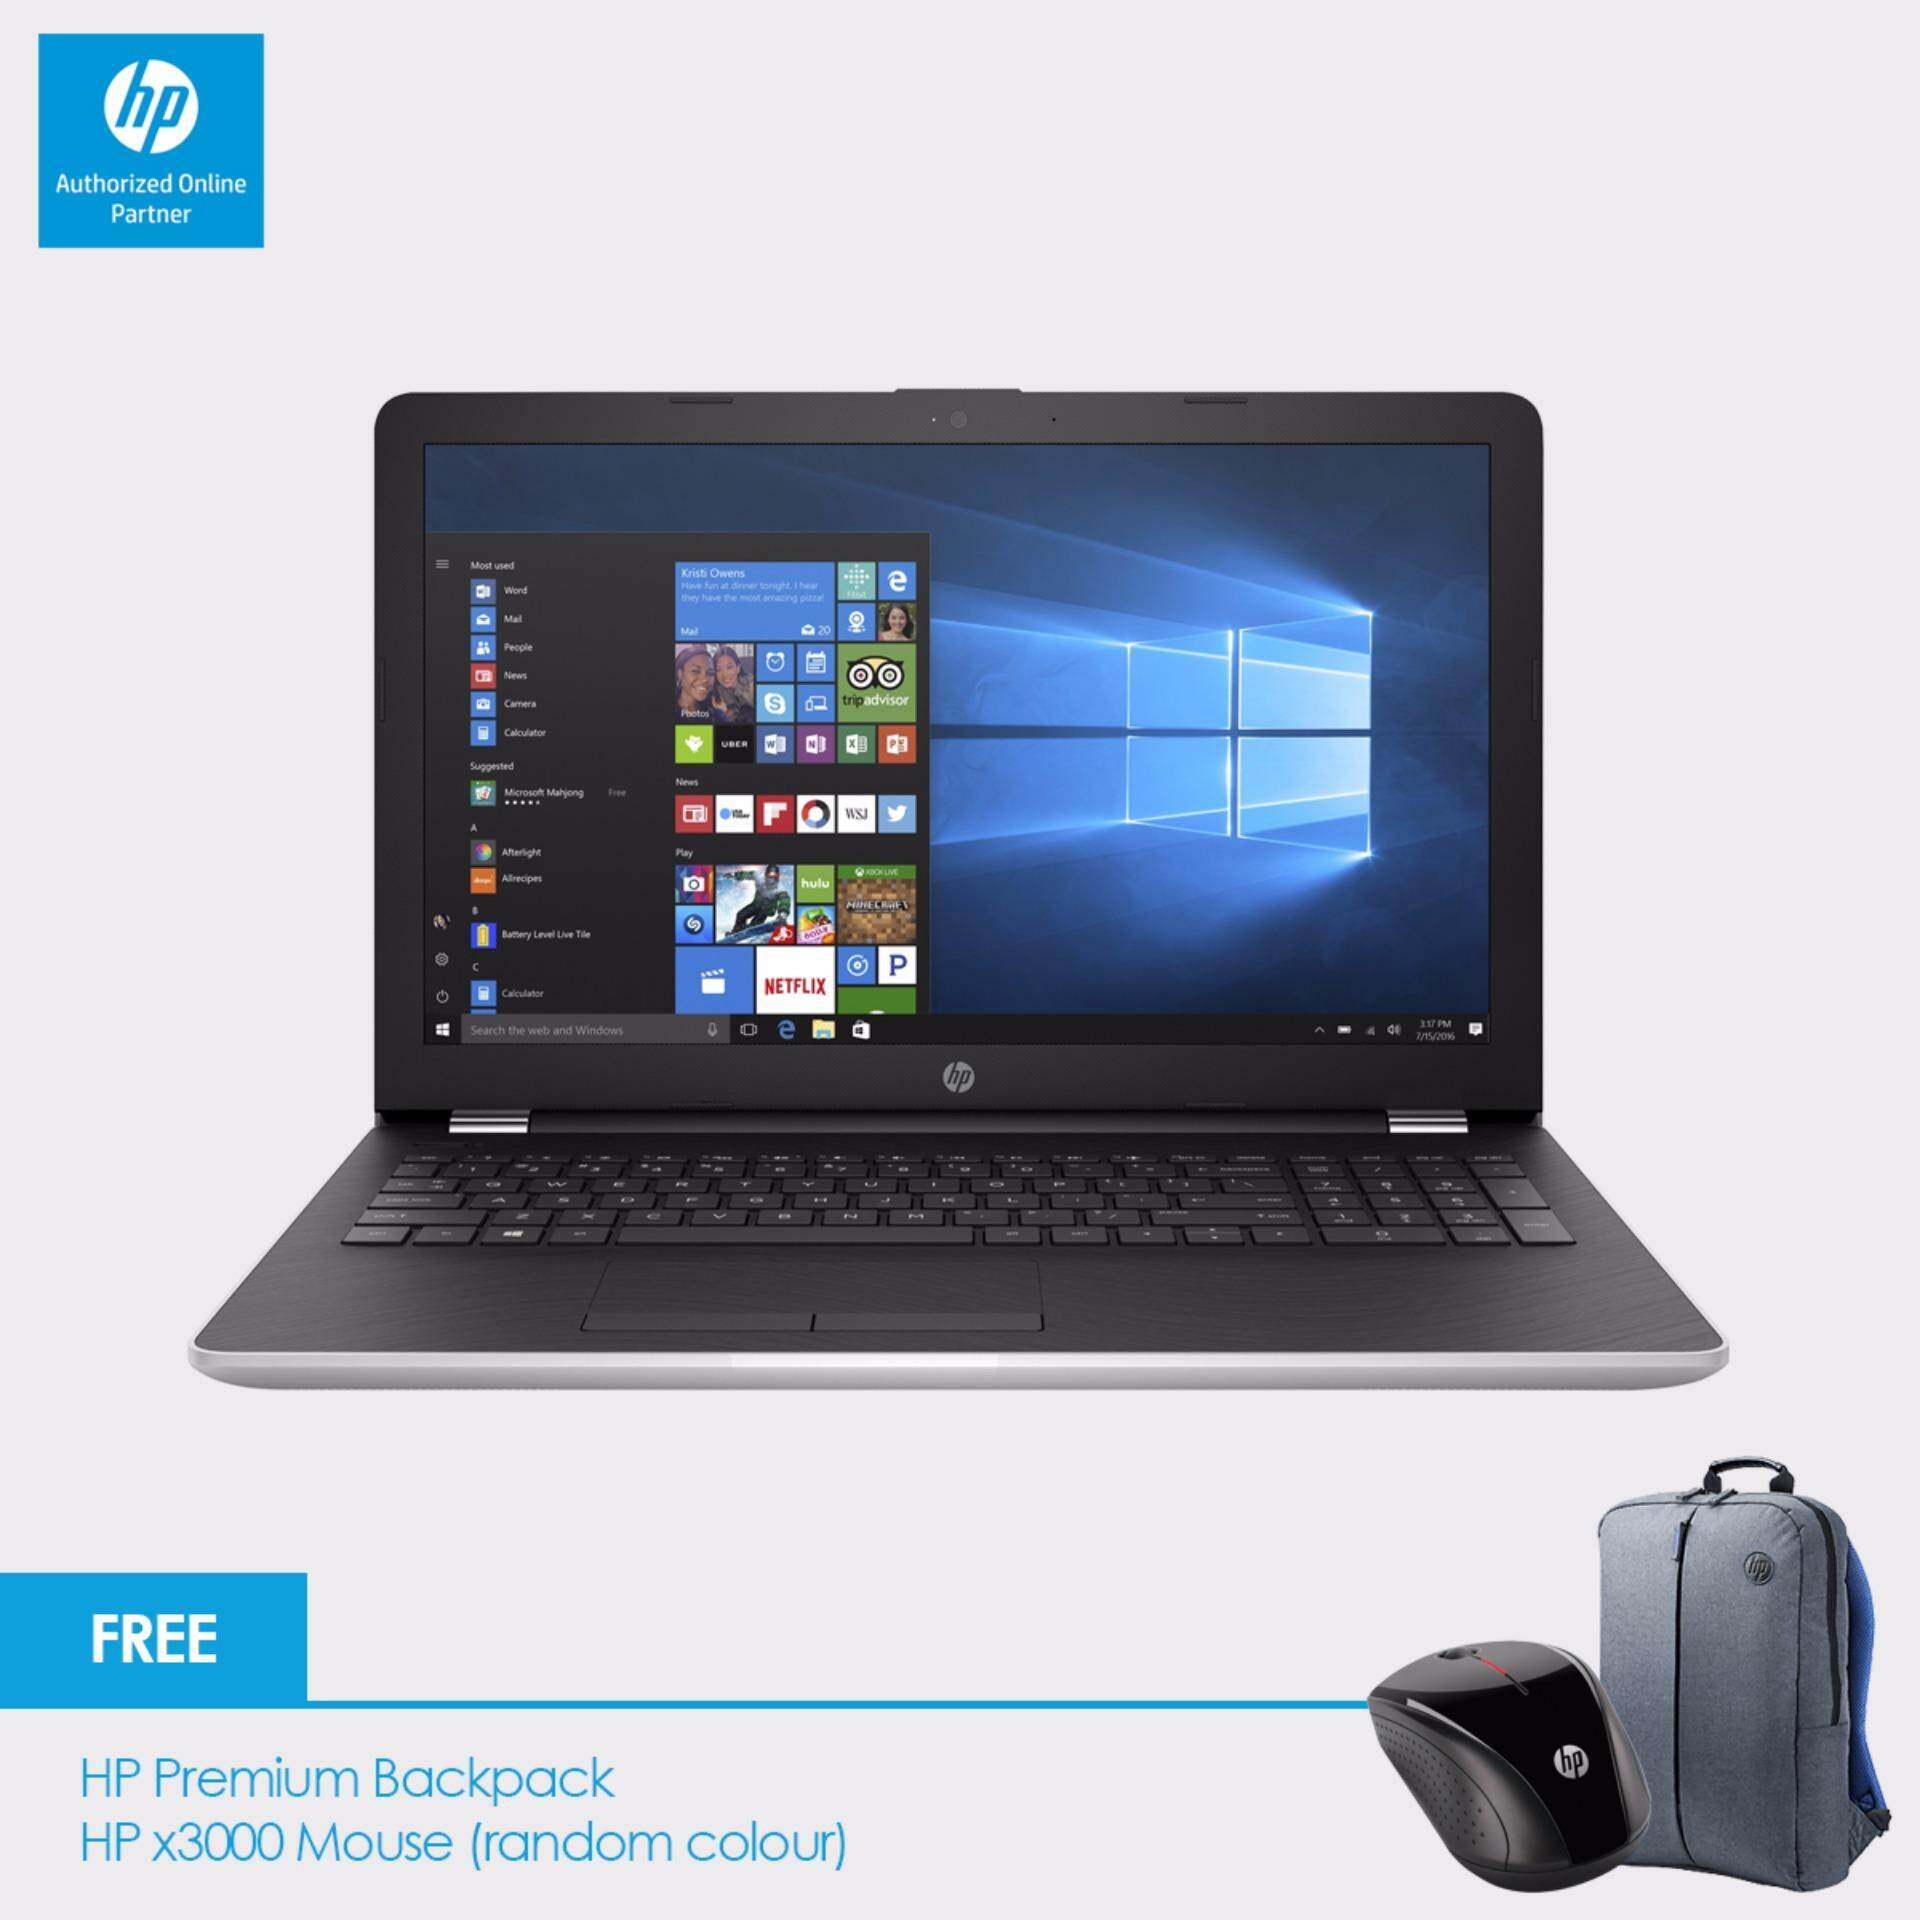 HP 15-bw075AX Laptop (A12-9720P, 4GBD4, 1TB, AMD 530 4GB, 15.6, Win10) - Natural Silver + Free Backpack n HP X3000 Wireless Mouse Malaysia